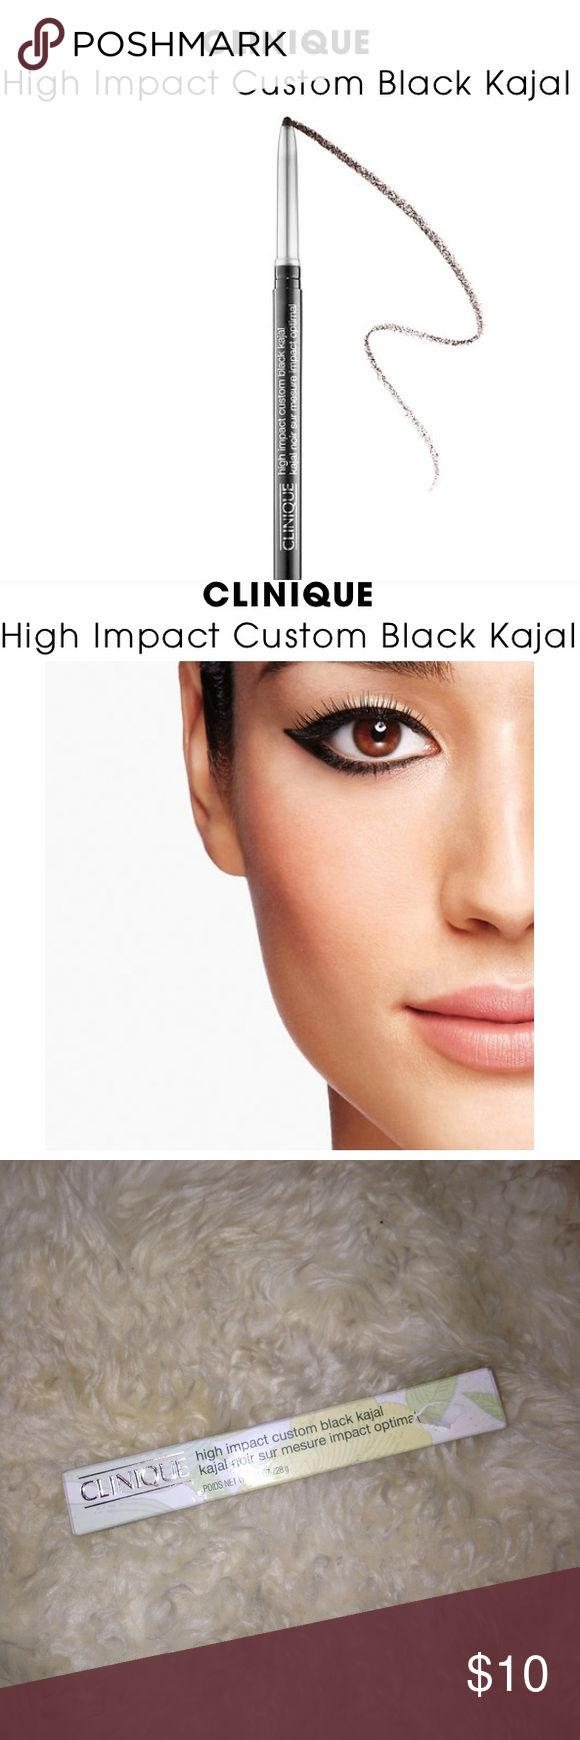 Clinique high impact custom black kajal eyeliner New in Box •Color is 04 blackened blue   A pigment-packed kajal eyeliner pencil.  For kicked-up eye drama, go bold and black with this unique eyeliner. This pigment-packed kajal pencil delivers rich, dark color with 12 hour hold. It's formulated to resist smudging, sweat, humidity, and water.  formulated WITHOUT:  - Parabens  This product is ophthalmologist and allergy tested and free of fragrance, formaidehyde, formaidehyde resin, toluene…